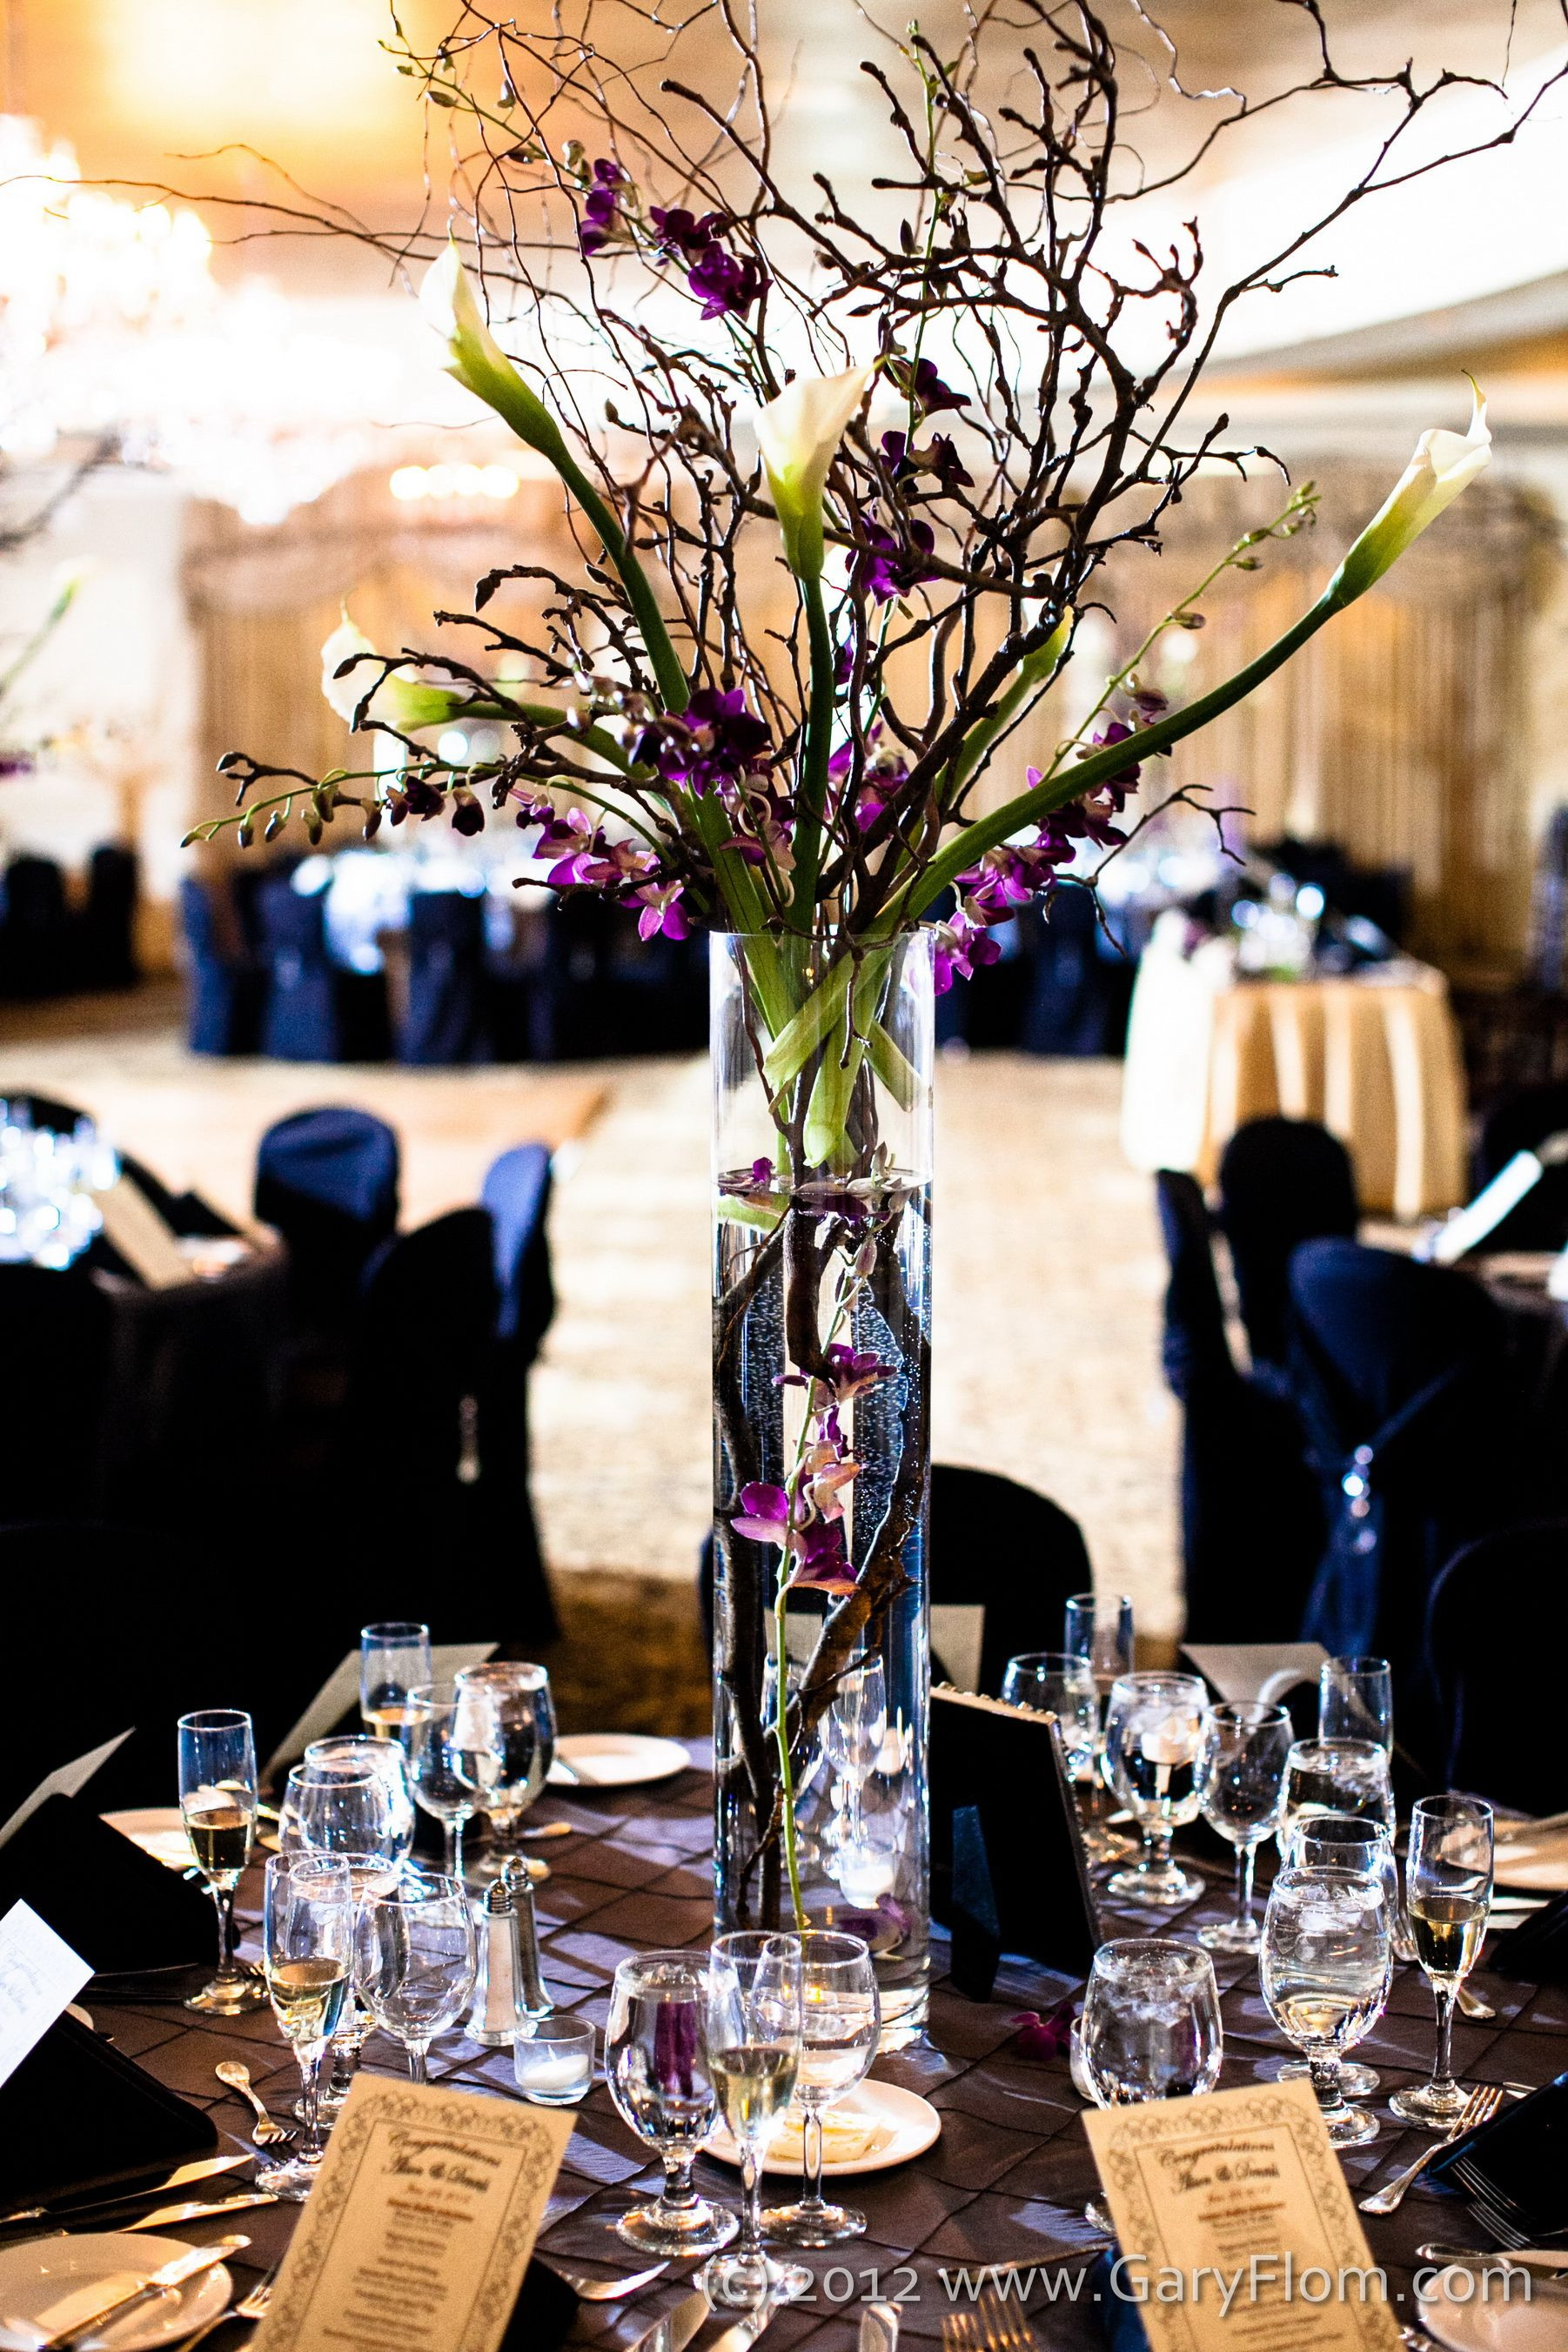 hobby lobby pilsner vase of centerpieces 6ft tall magnolia branches curly willow stems calla inside centerpieces 6ft tall magnolia branches curly willow stems calla lilies and purple orchids florist greens beans clinton nj venuegrand colonial